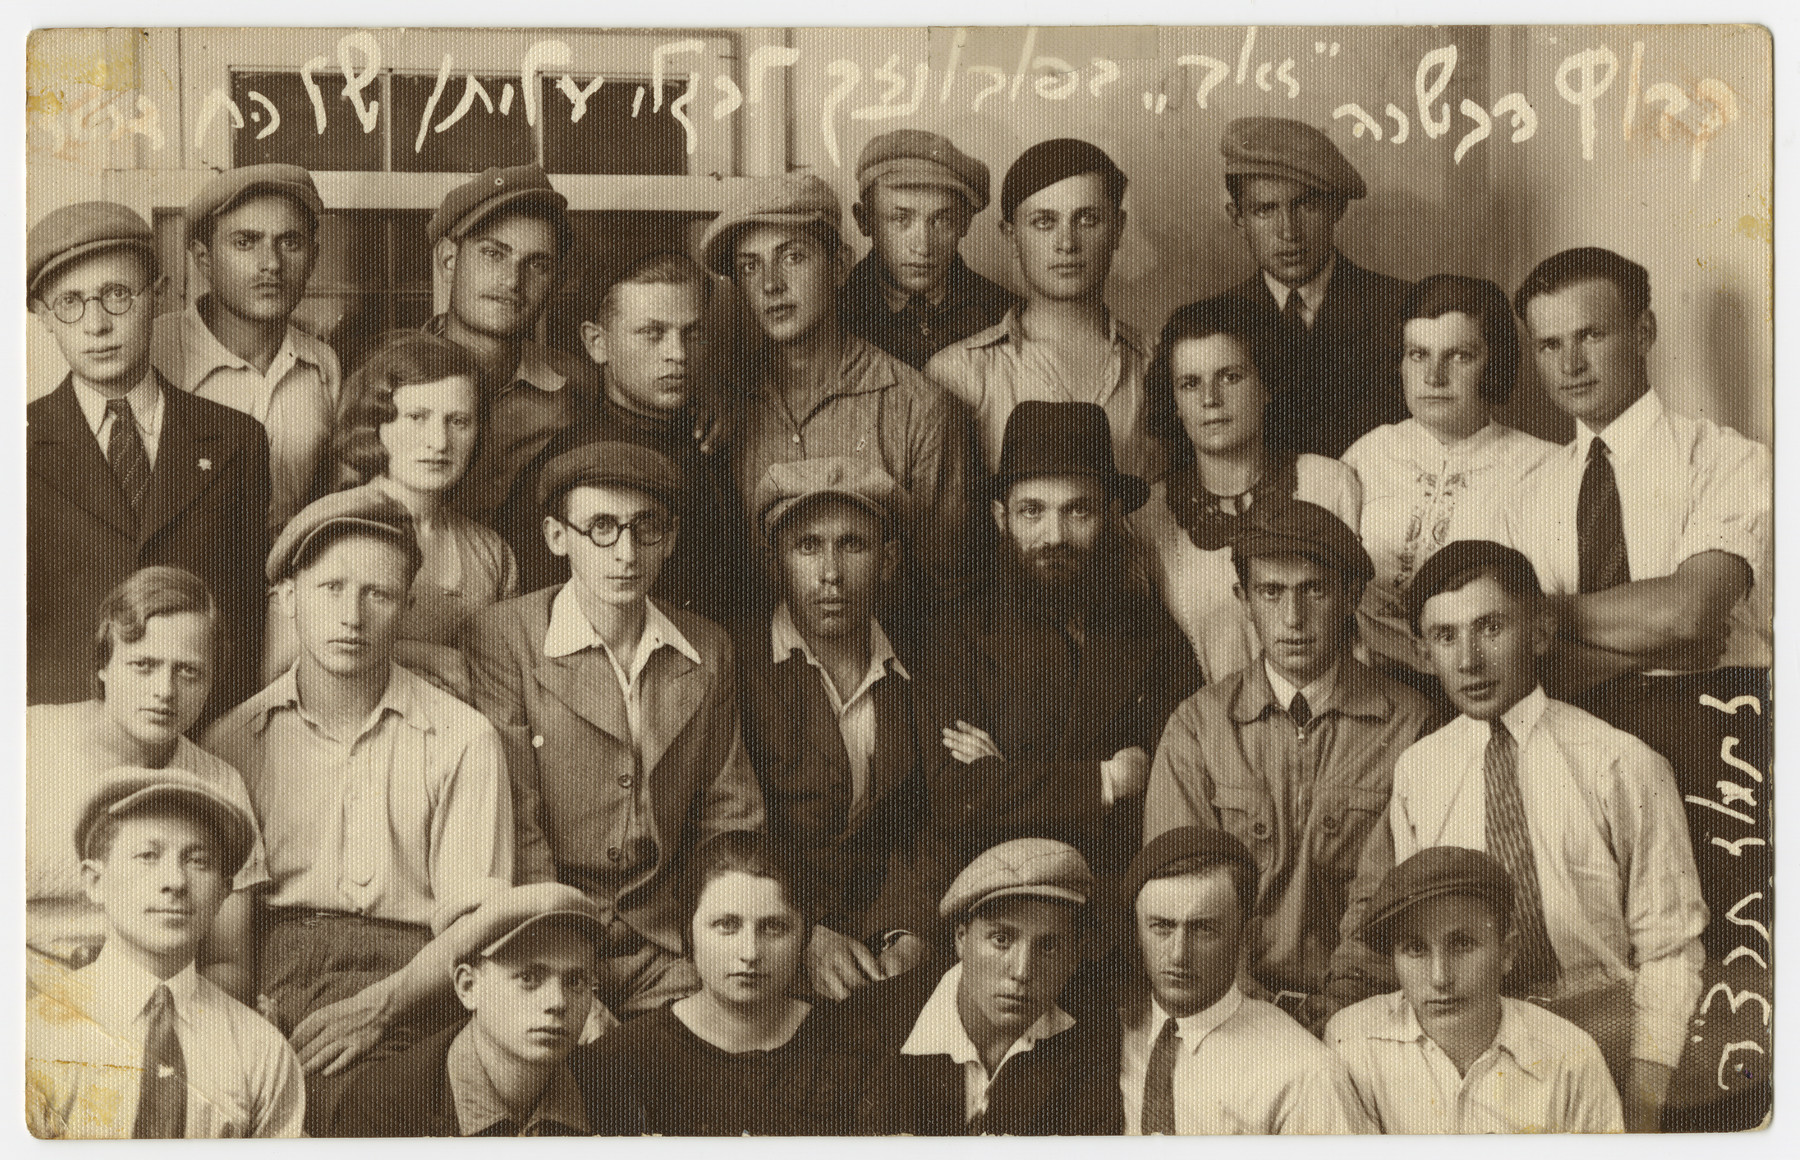 Asher Fetherhar (later Zidon) poses with members of the Hechalutz Mizrachi hachshara probably in Powazki.